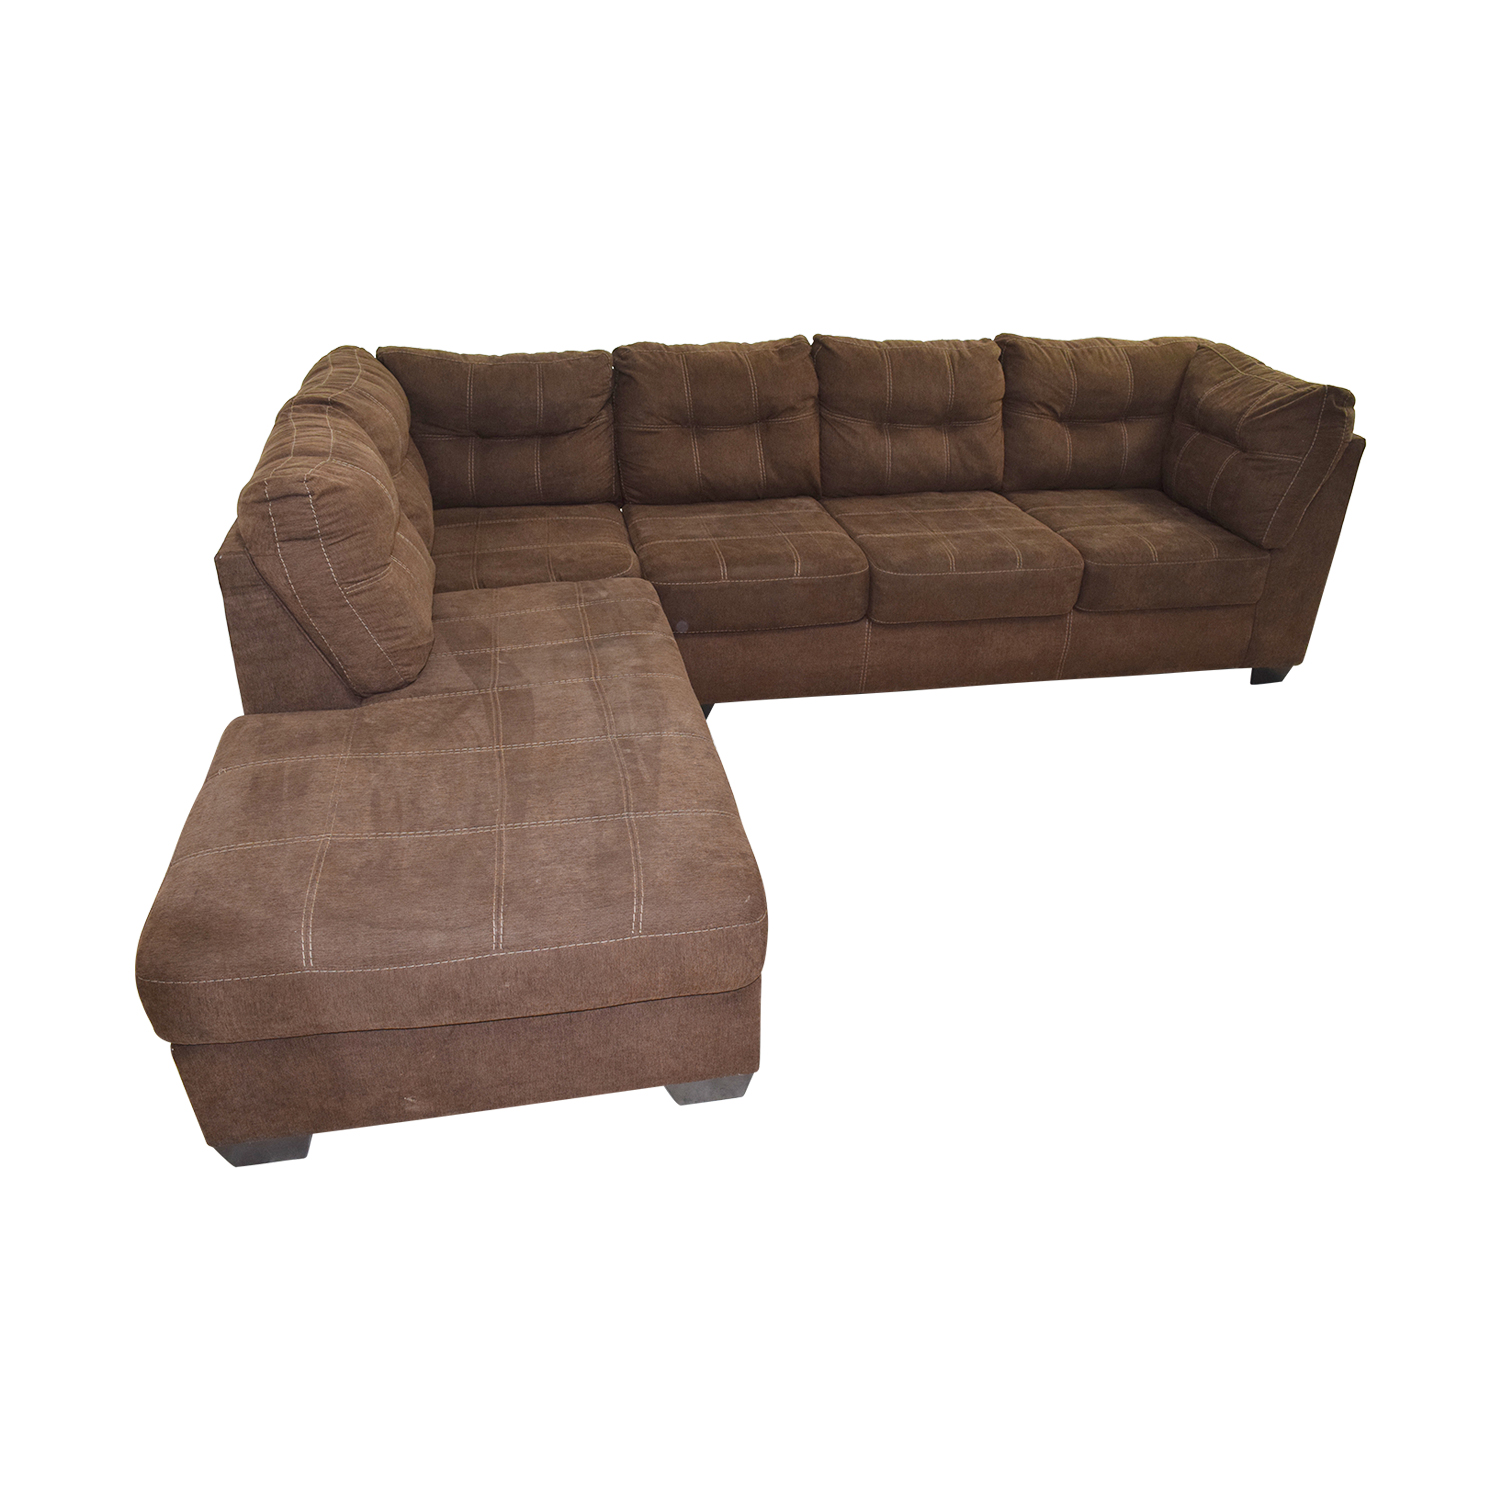 Buying A Second Hand Sofa 64 Off Brown L Shaped Chaise Sectional Sofa Sofas